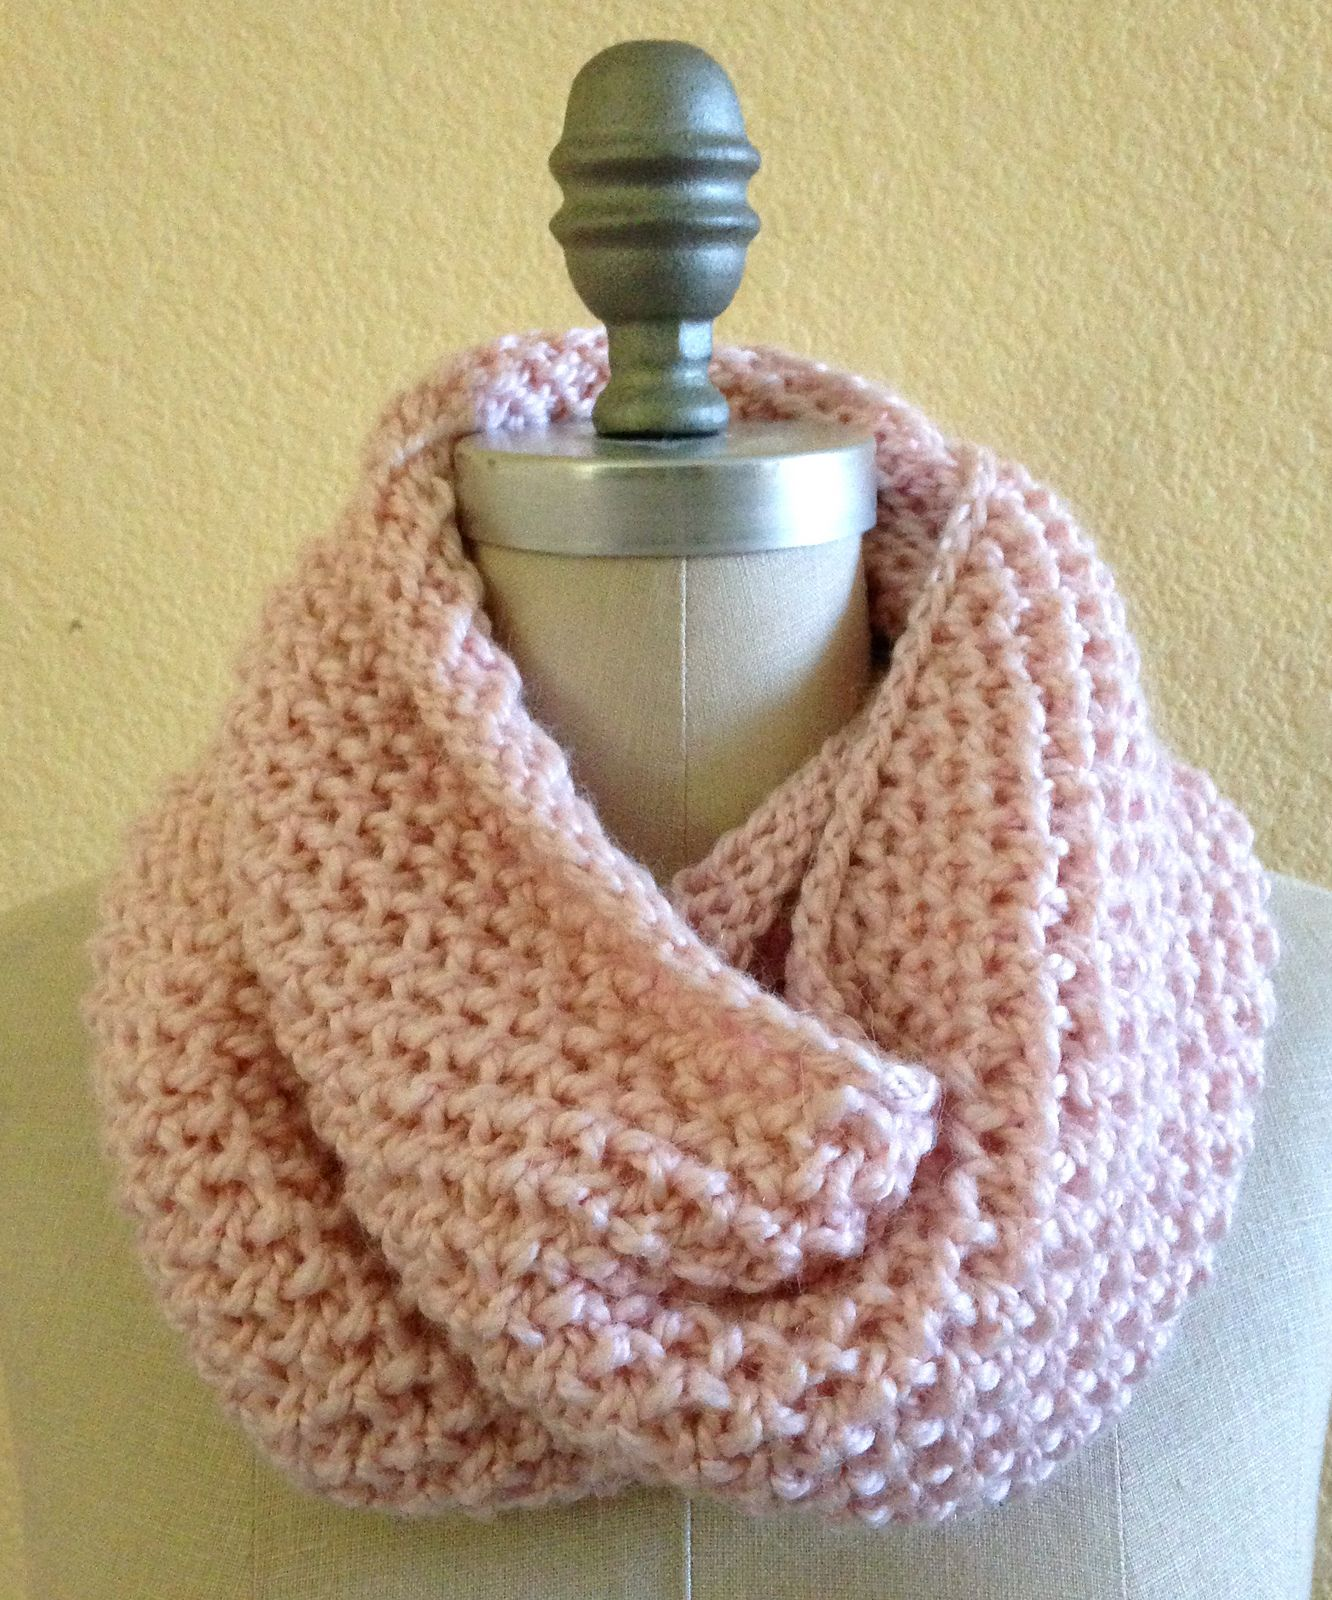 Ravelry lael pattern by wendy neal knit stuff pinterest lael is a simple textured cowl worked in the round that looks great on either side the stitch pattern creates a thick squishy fabric bankloansurffo Gallery